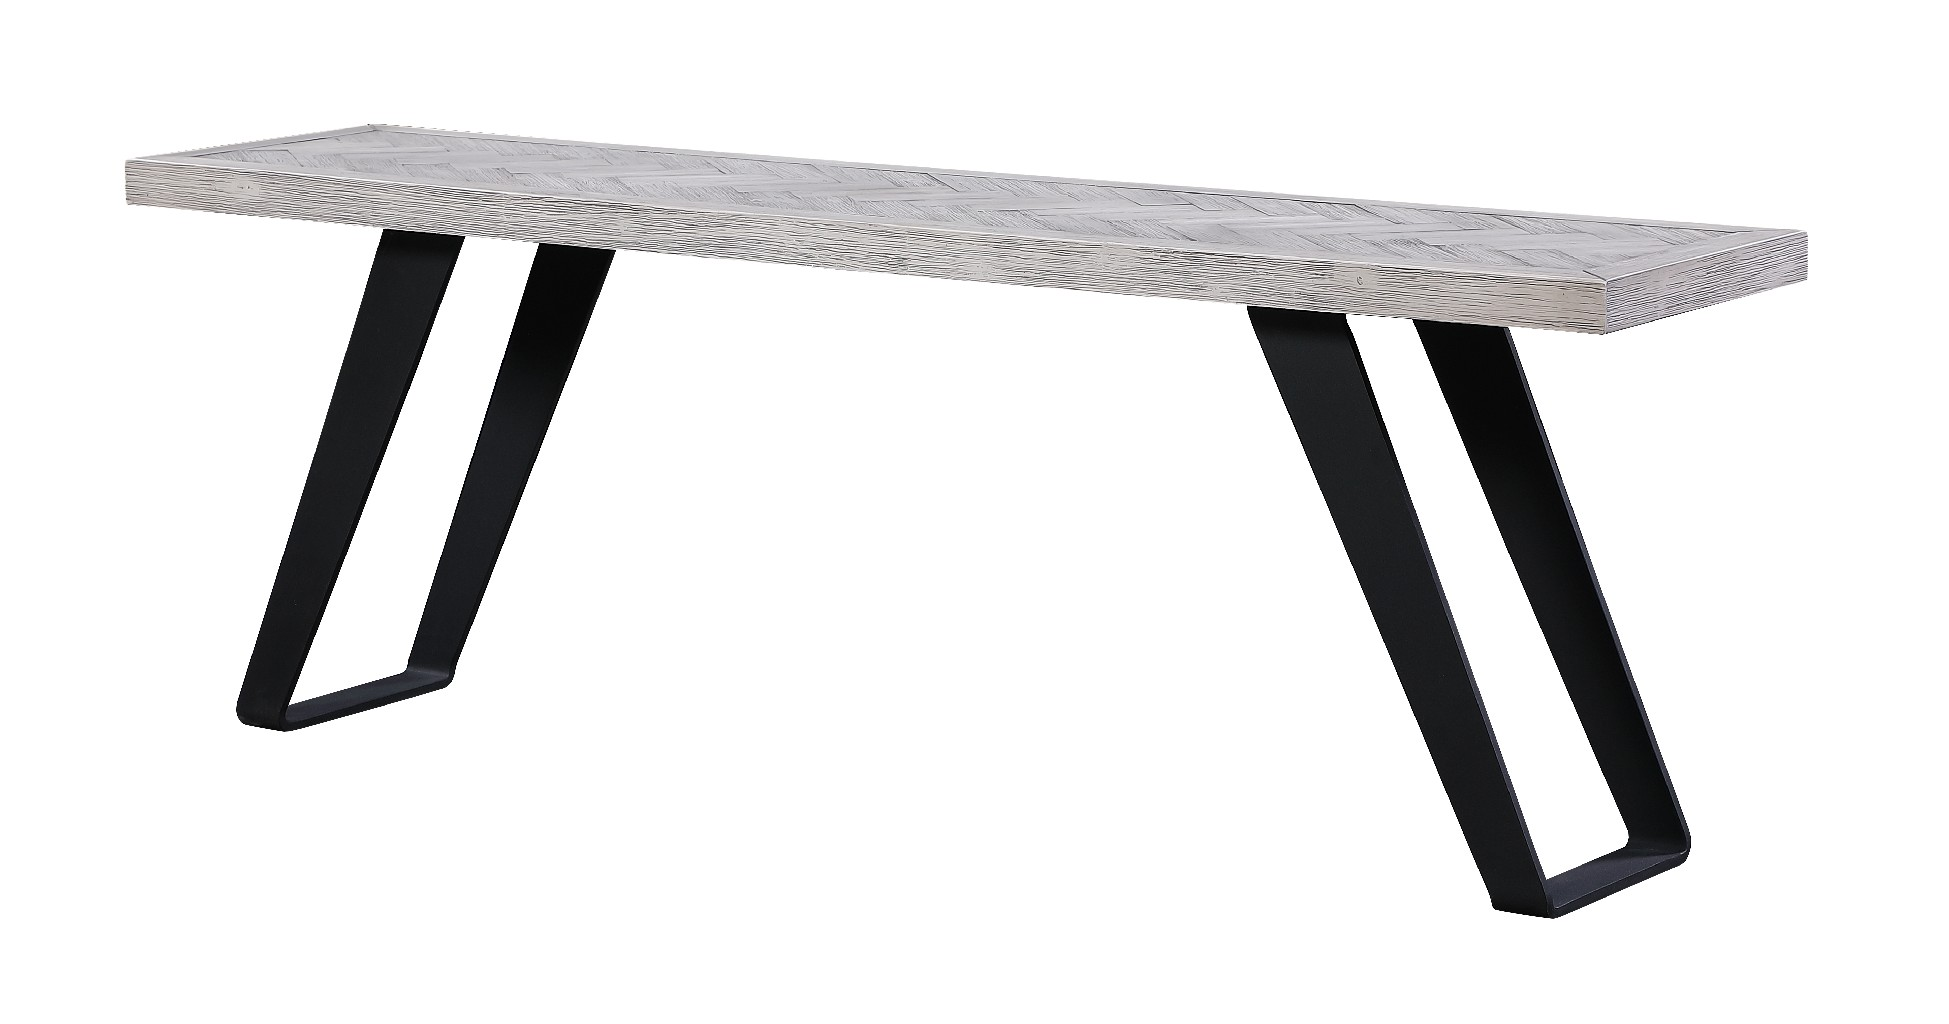 Aspen Court II Counter Height Dining Bench - Coast to Coast Imports 48200